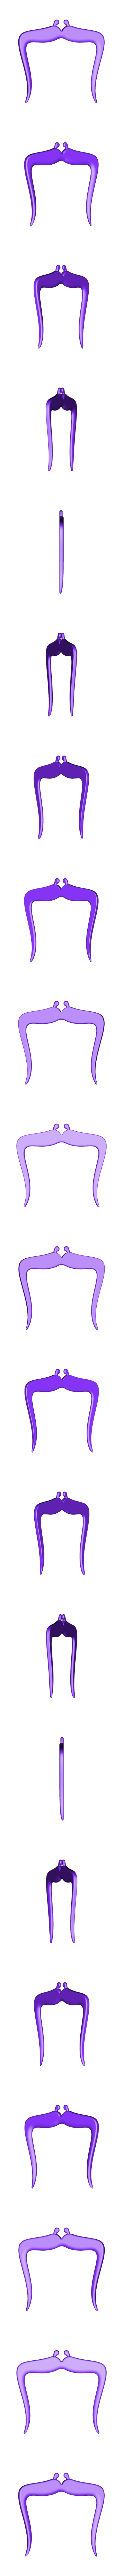 Horseshoe Mustachio.stl Download free STL file Horseshoe Mustachio • 3D printing object, Lucy_Haribert